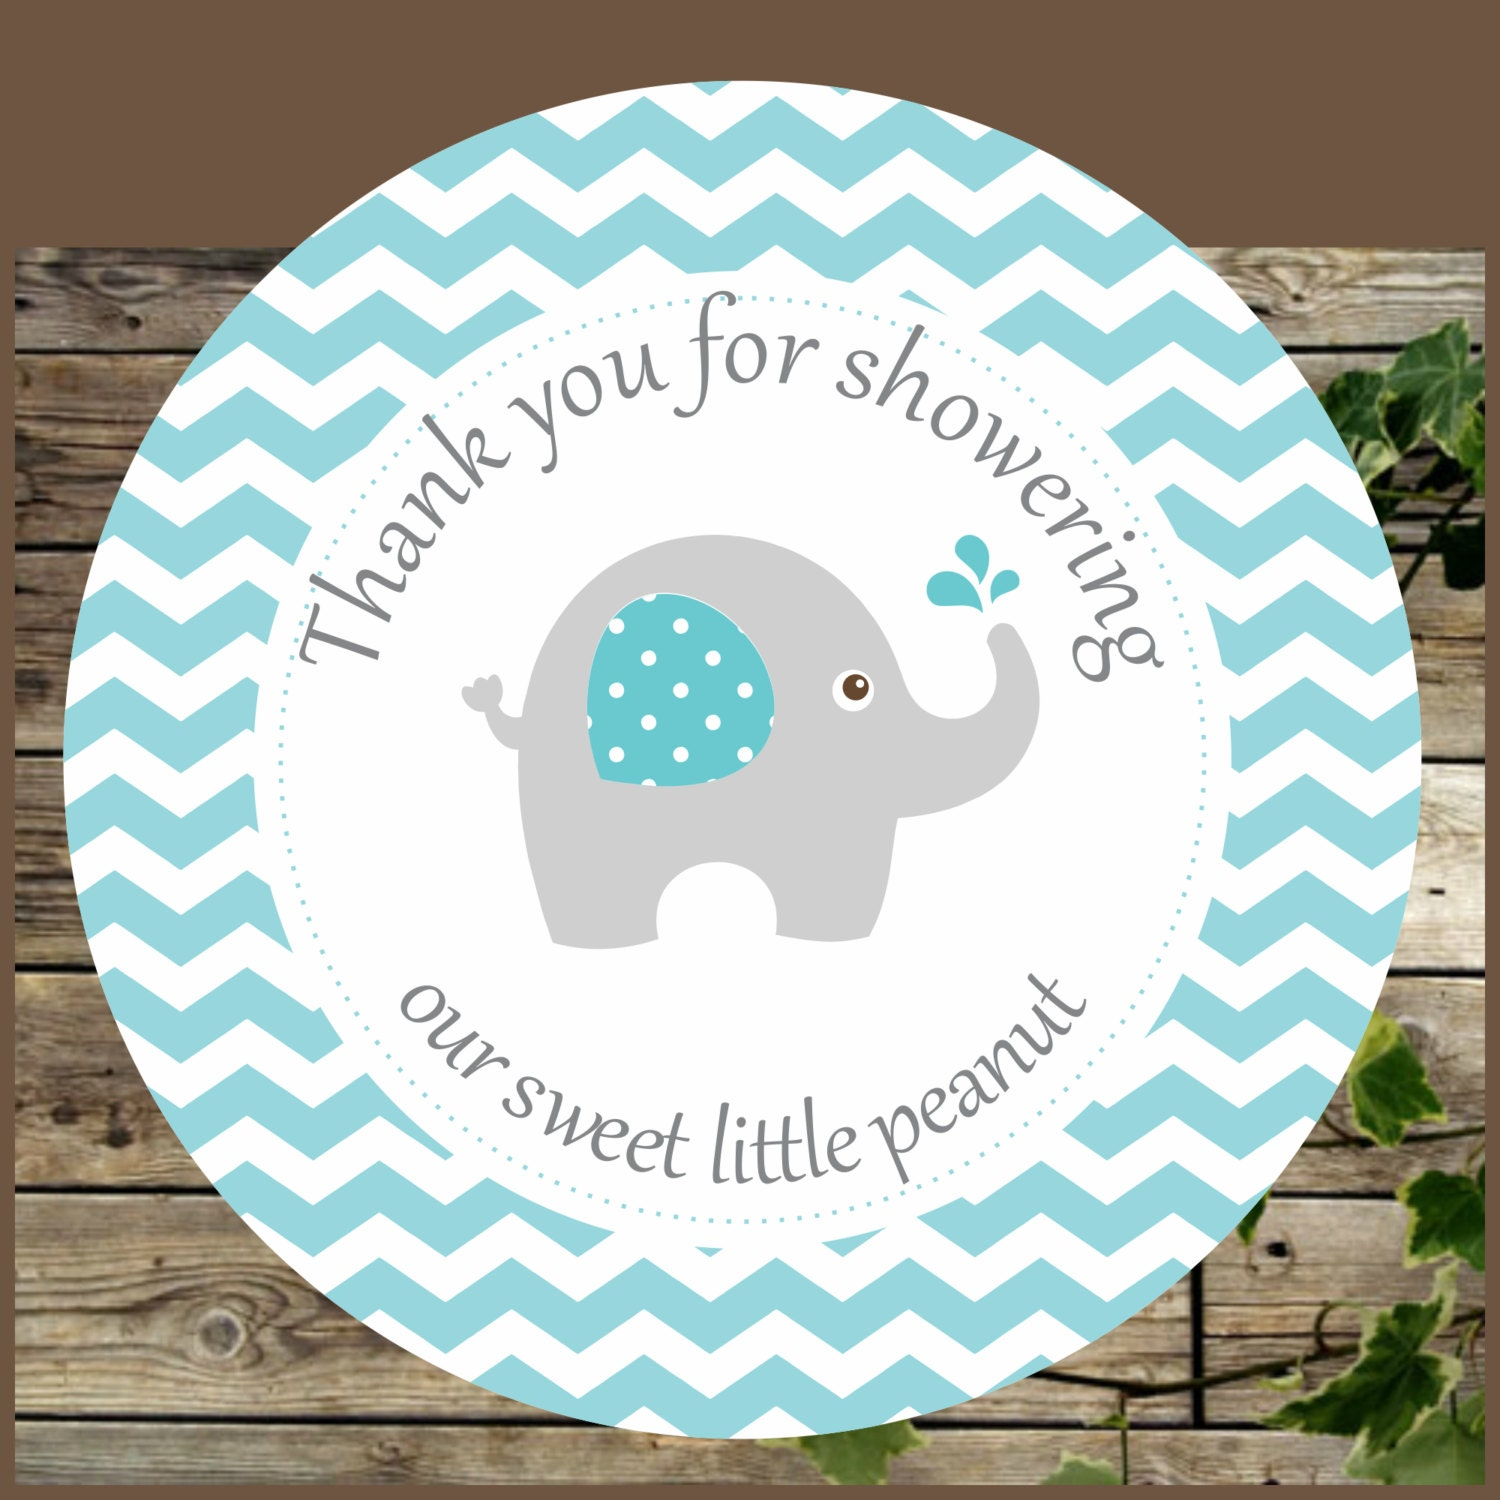 Gorgeous image intended for printable elephant baby shower